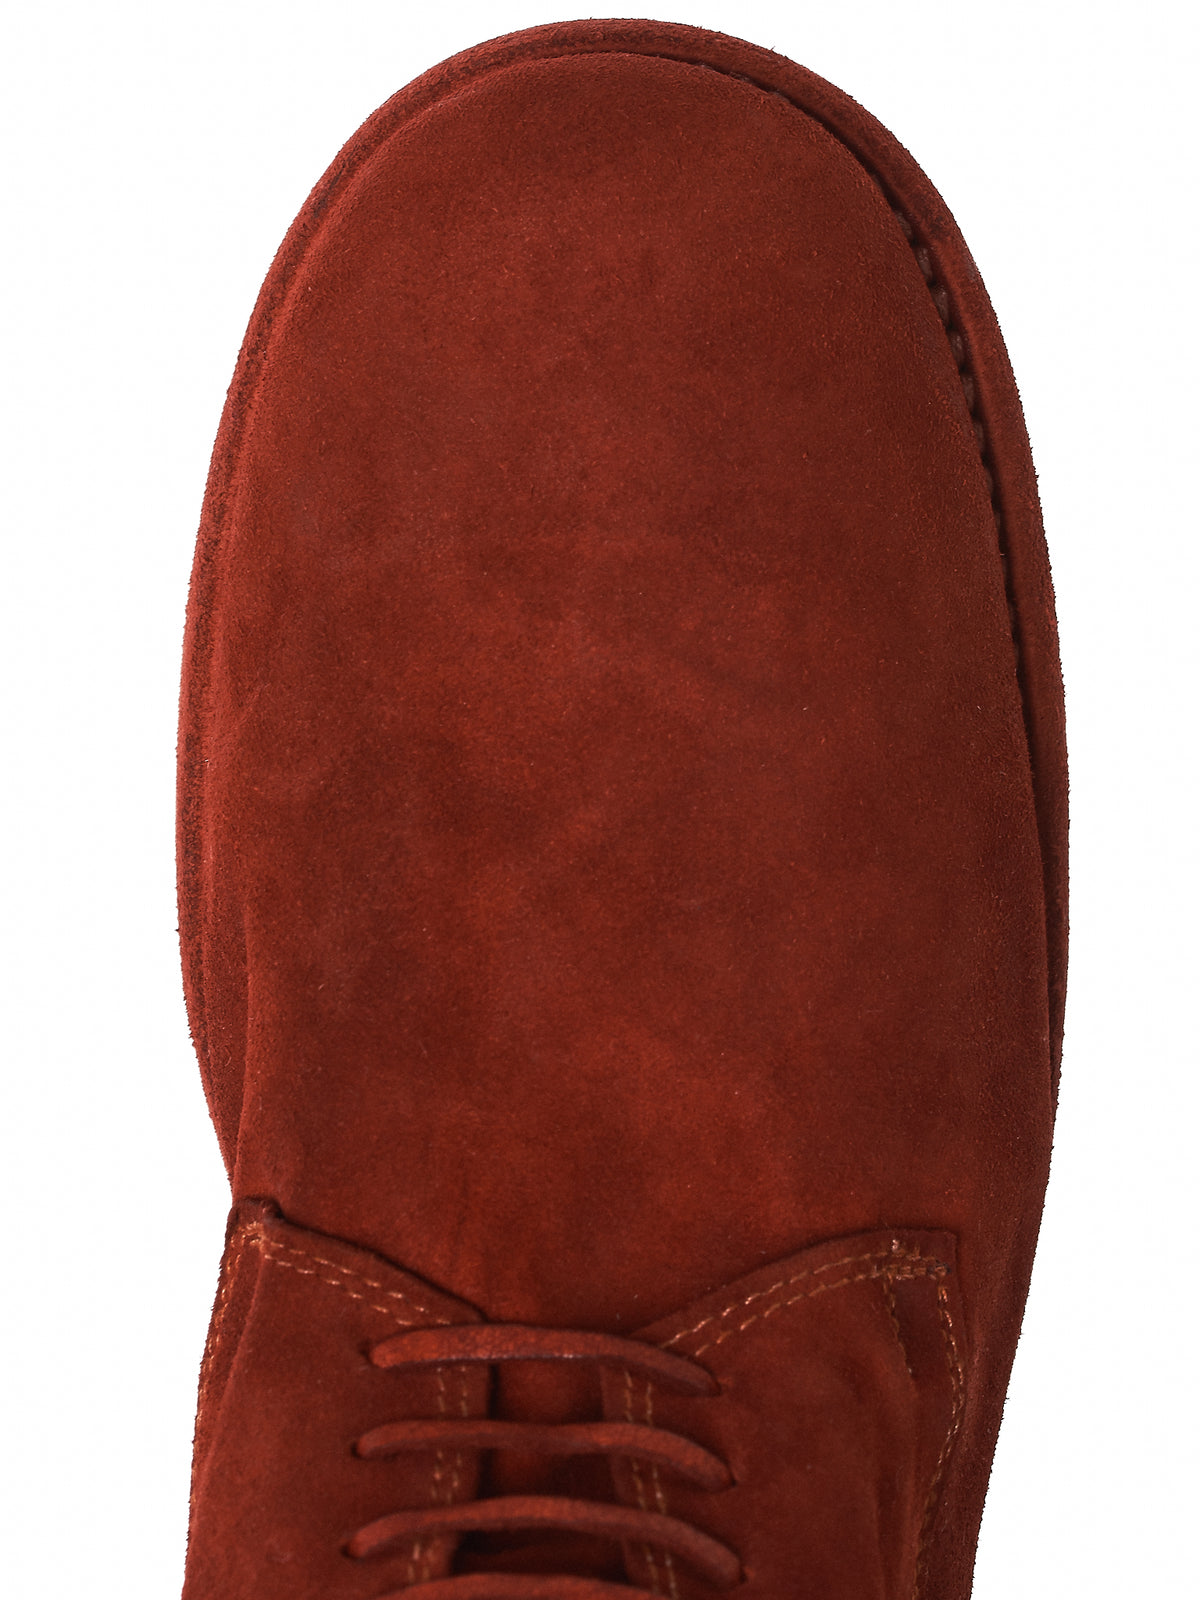 Suede Dyed Leather Boots (994-KANGAROO-REVERSE-1006T)